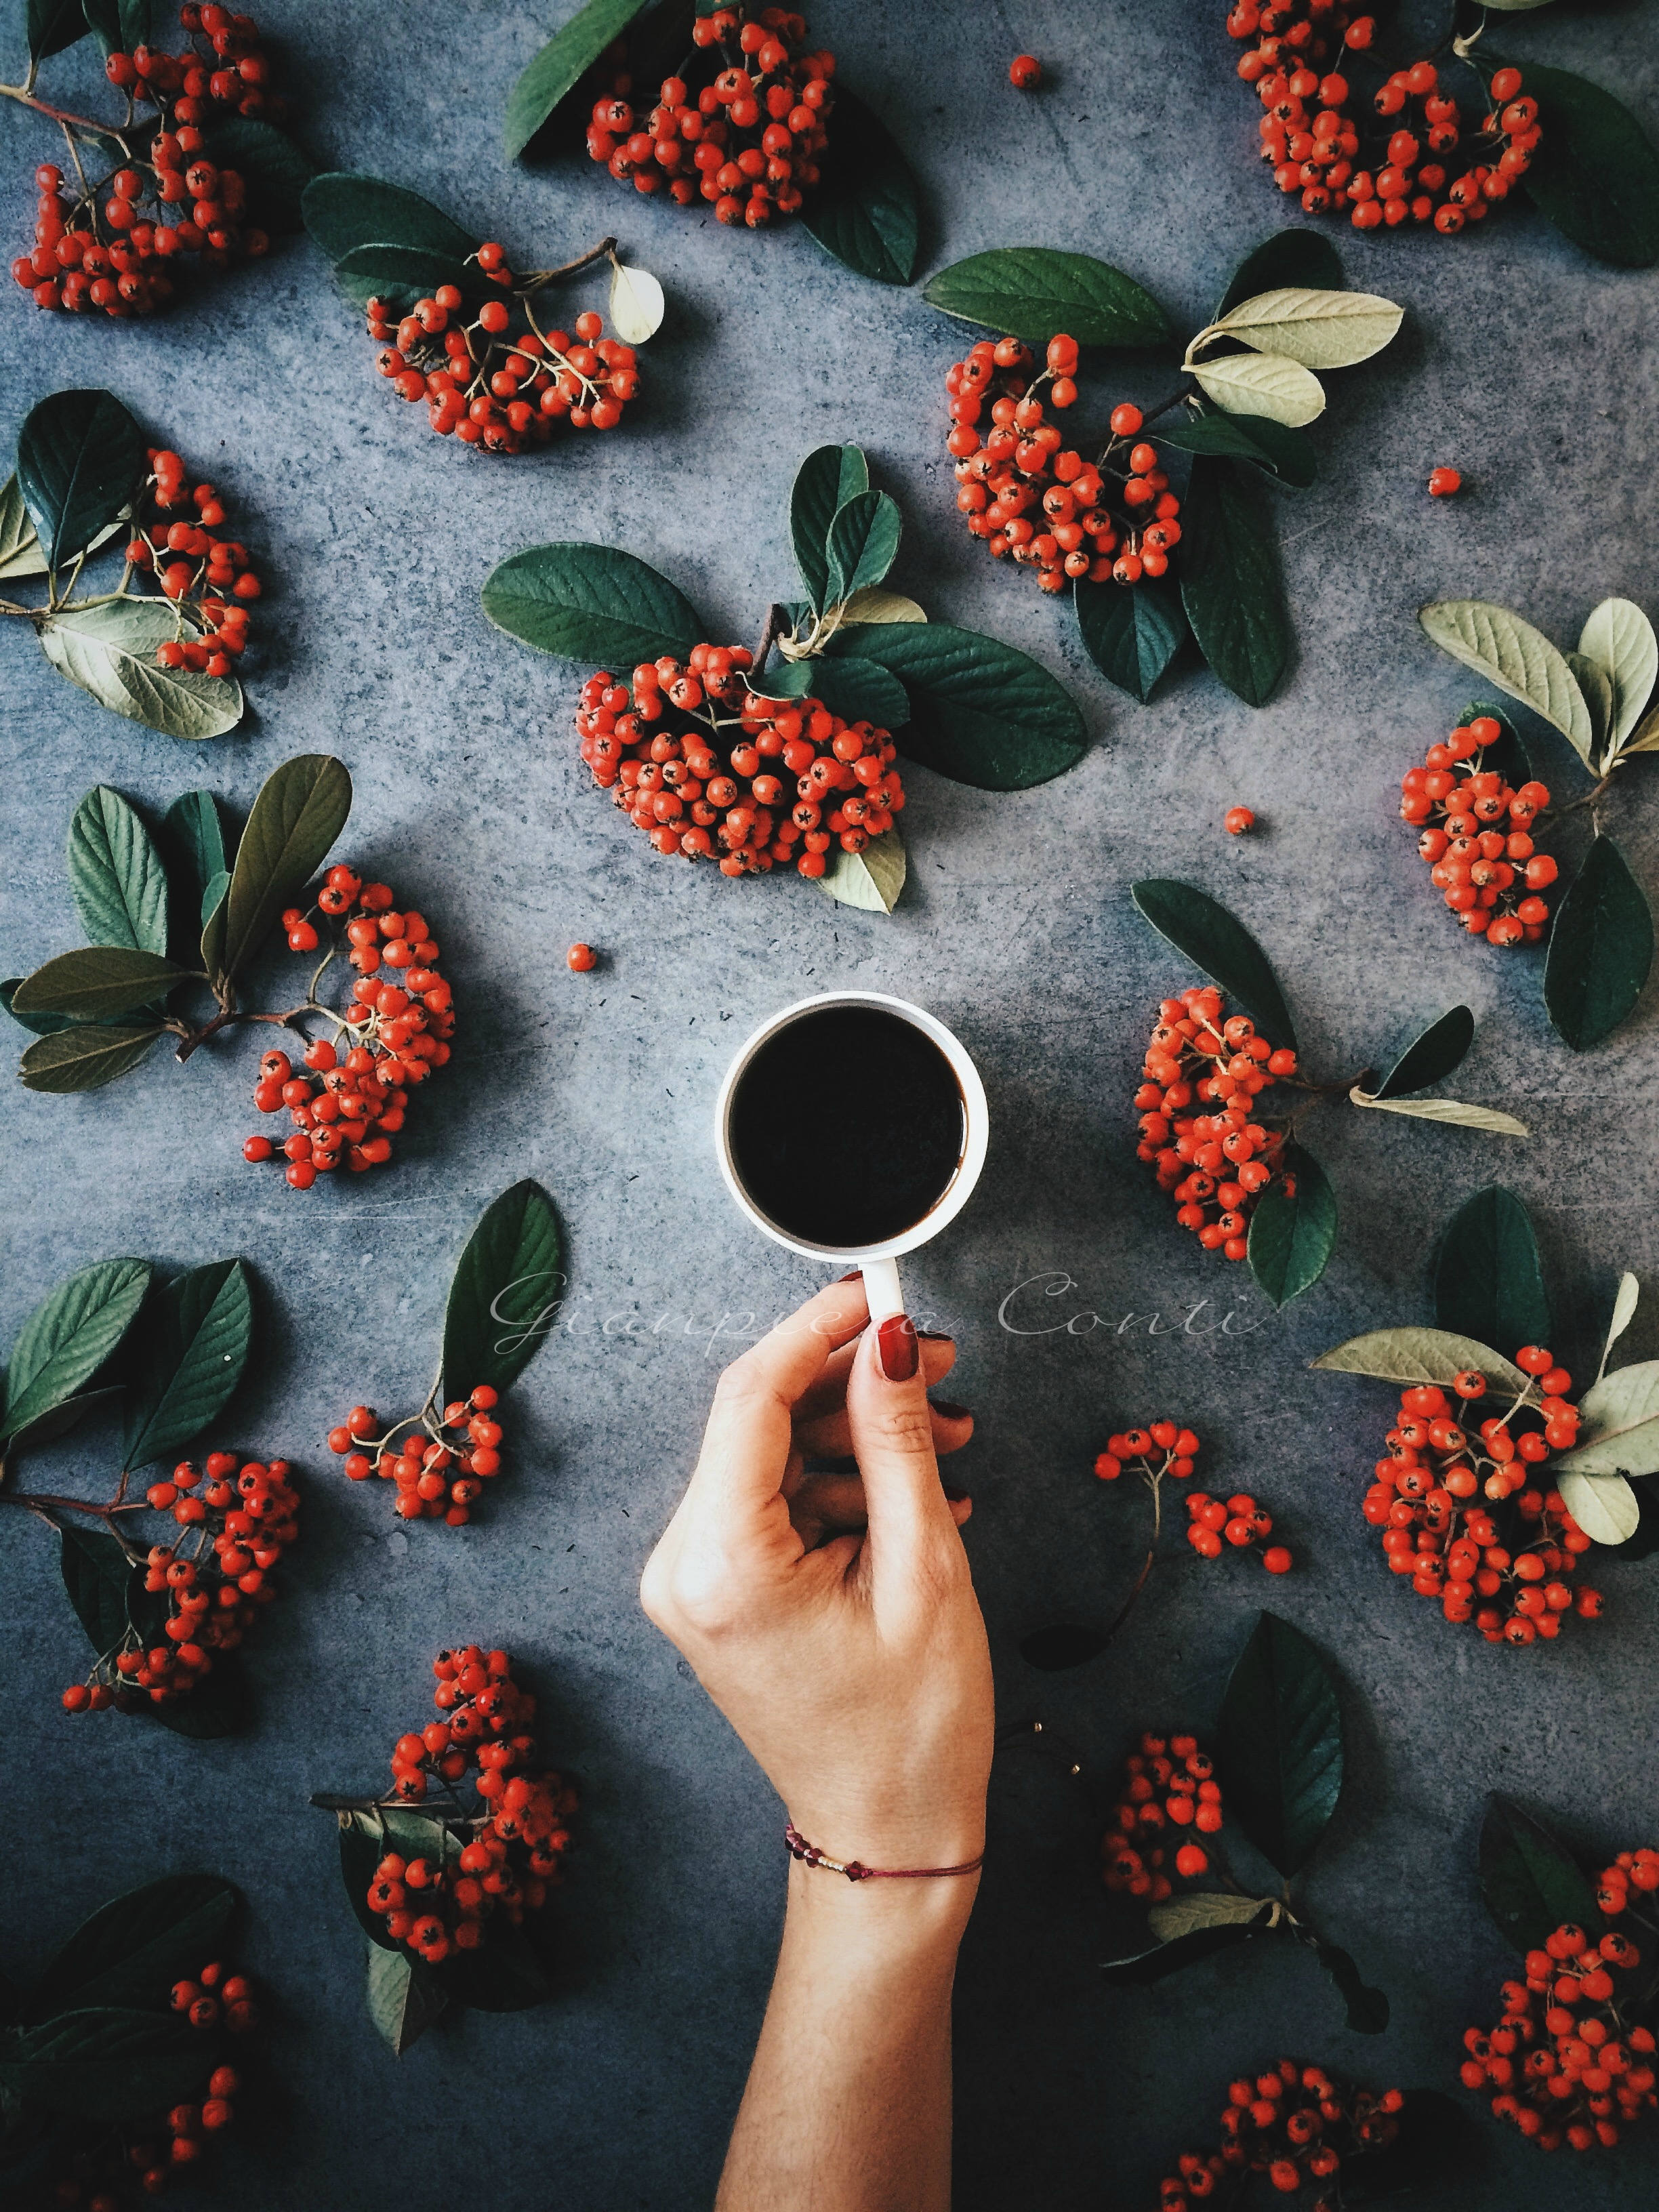 Red berries styling